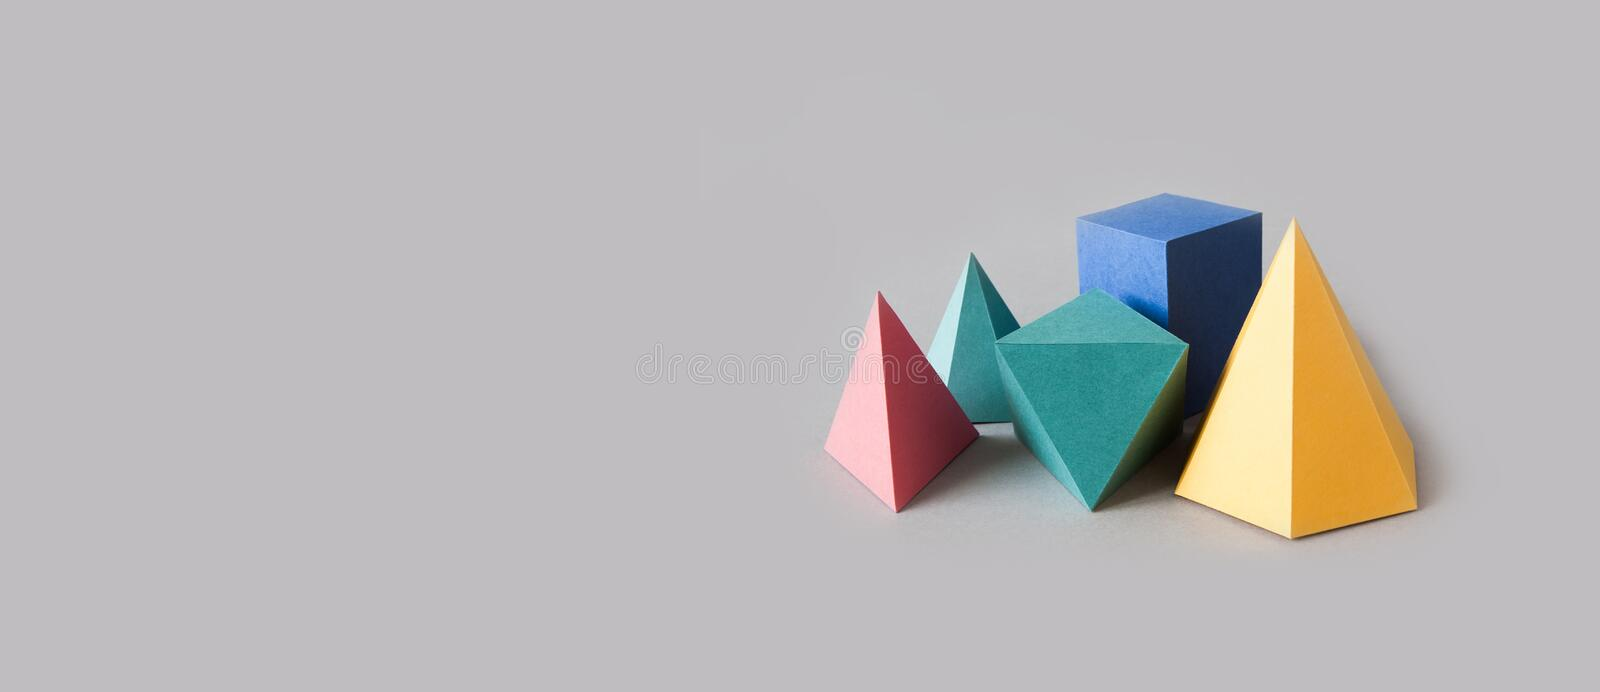 Colorful platonic solids, abstract geometric figures on gray background. Pyramid prism rectangular cube yellow blue pink. Green colored shapes. Shallow depth of royalty free stock photos